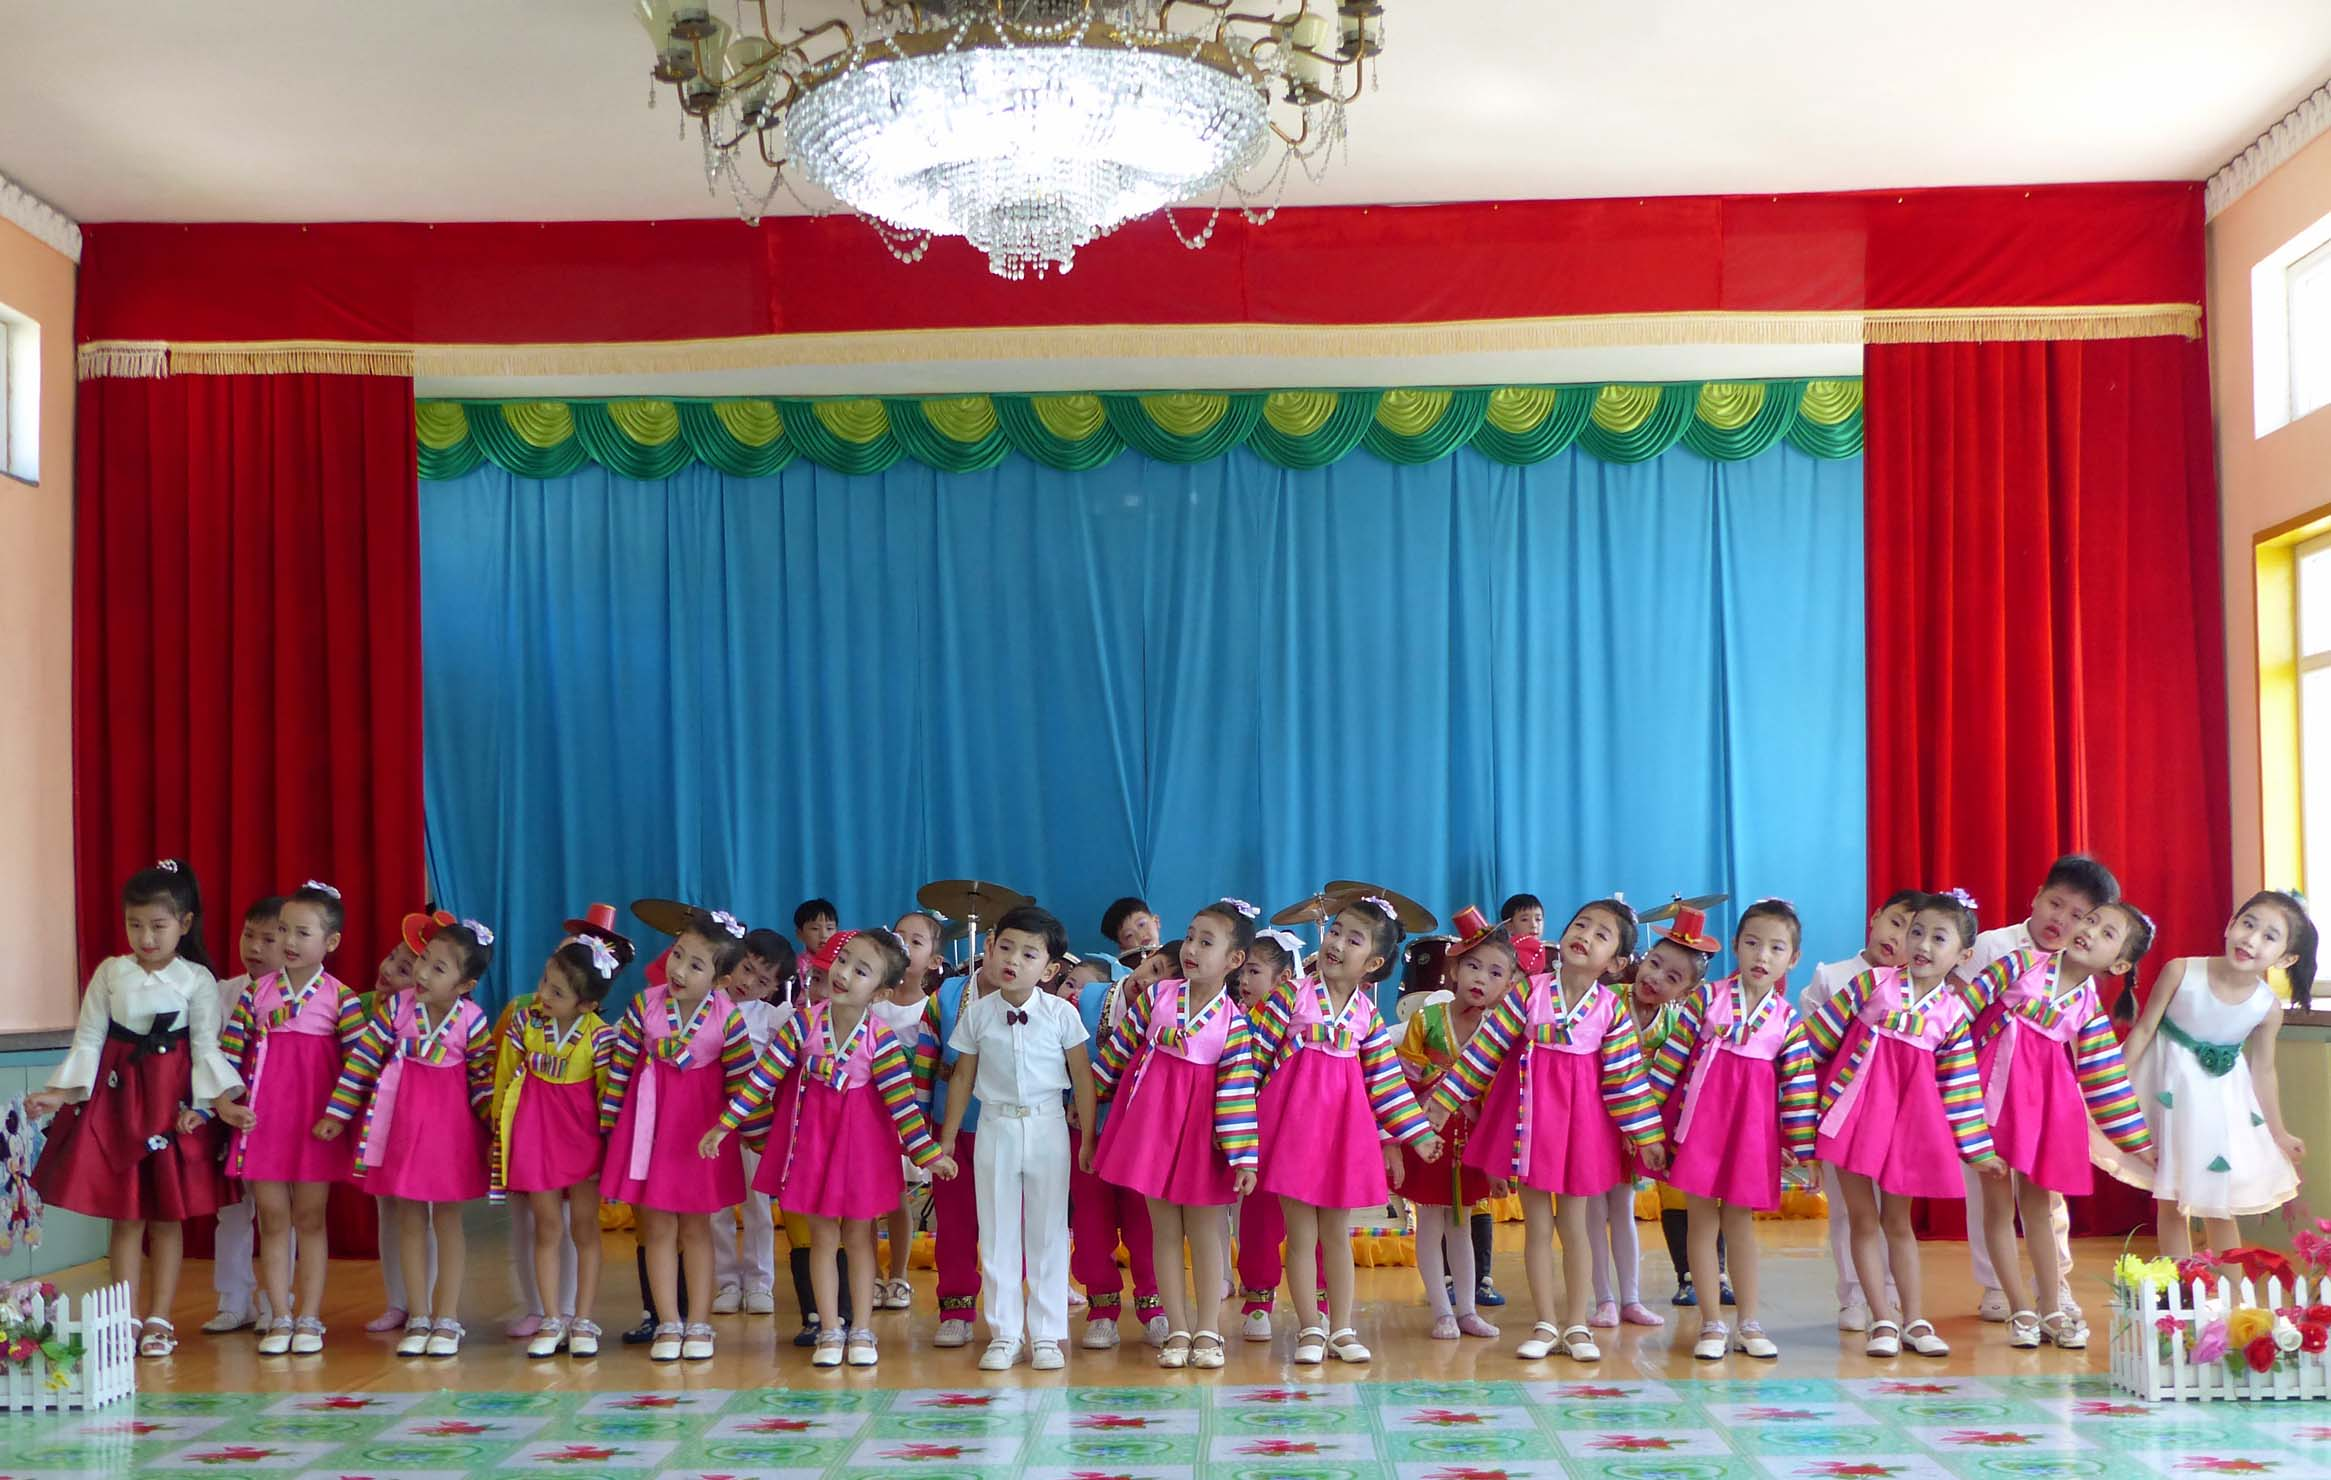 Young girls and boys in traditional dress